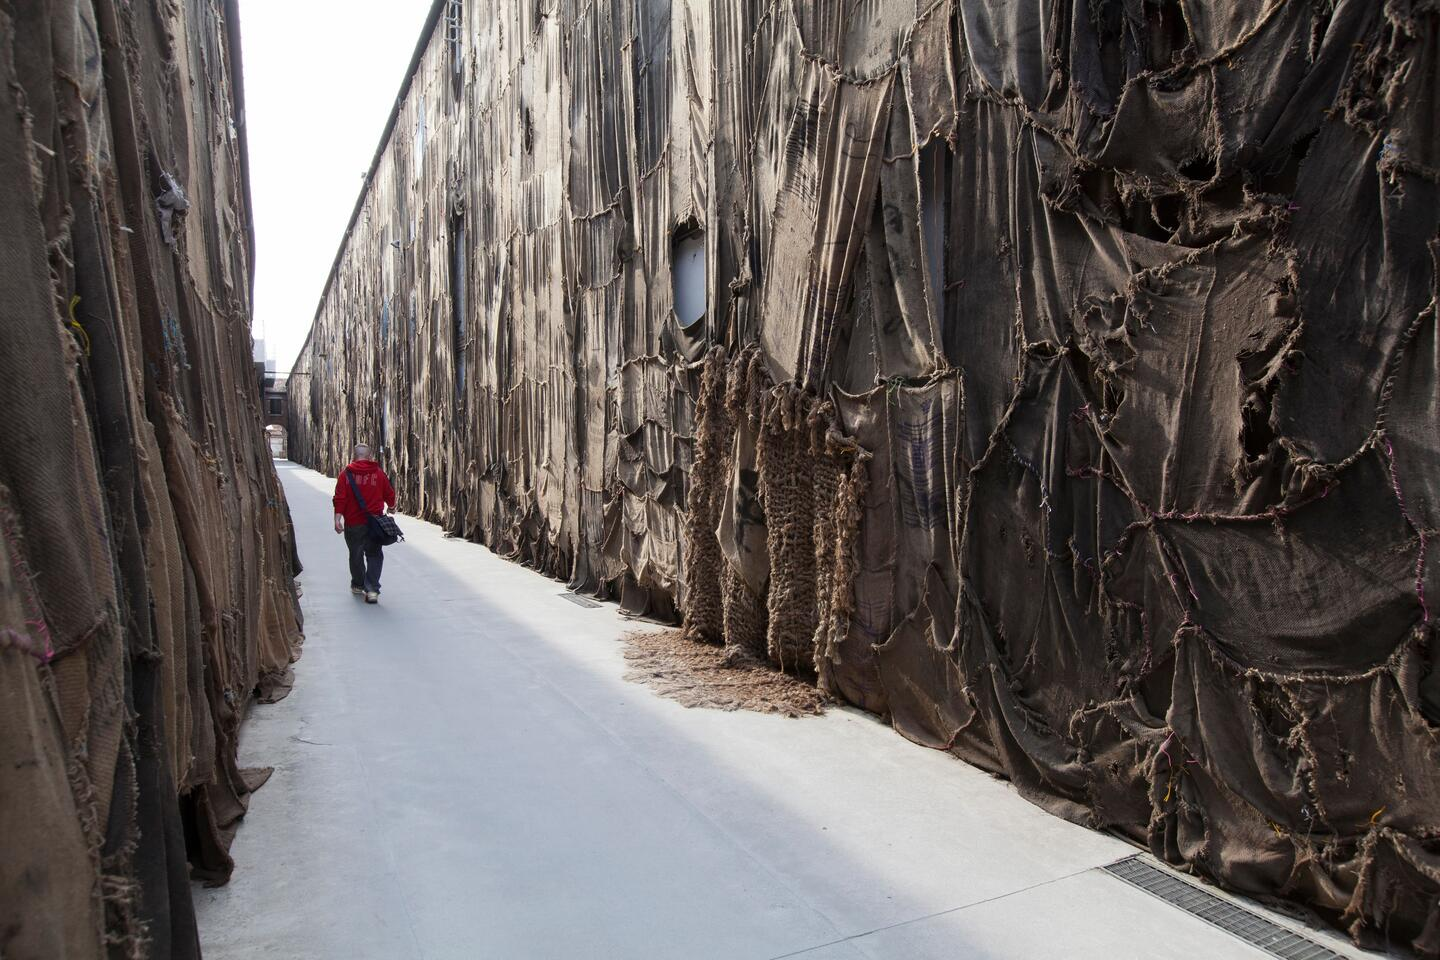 Jute sack installations at the Venice Biennale 2015